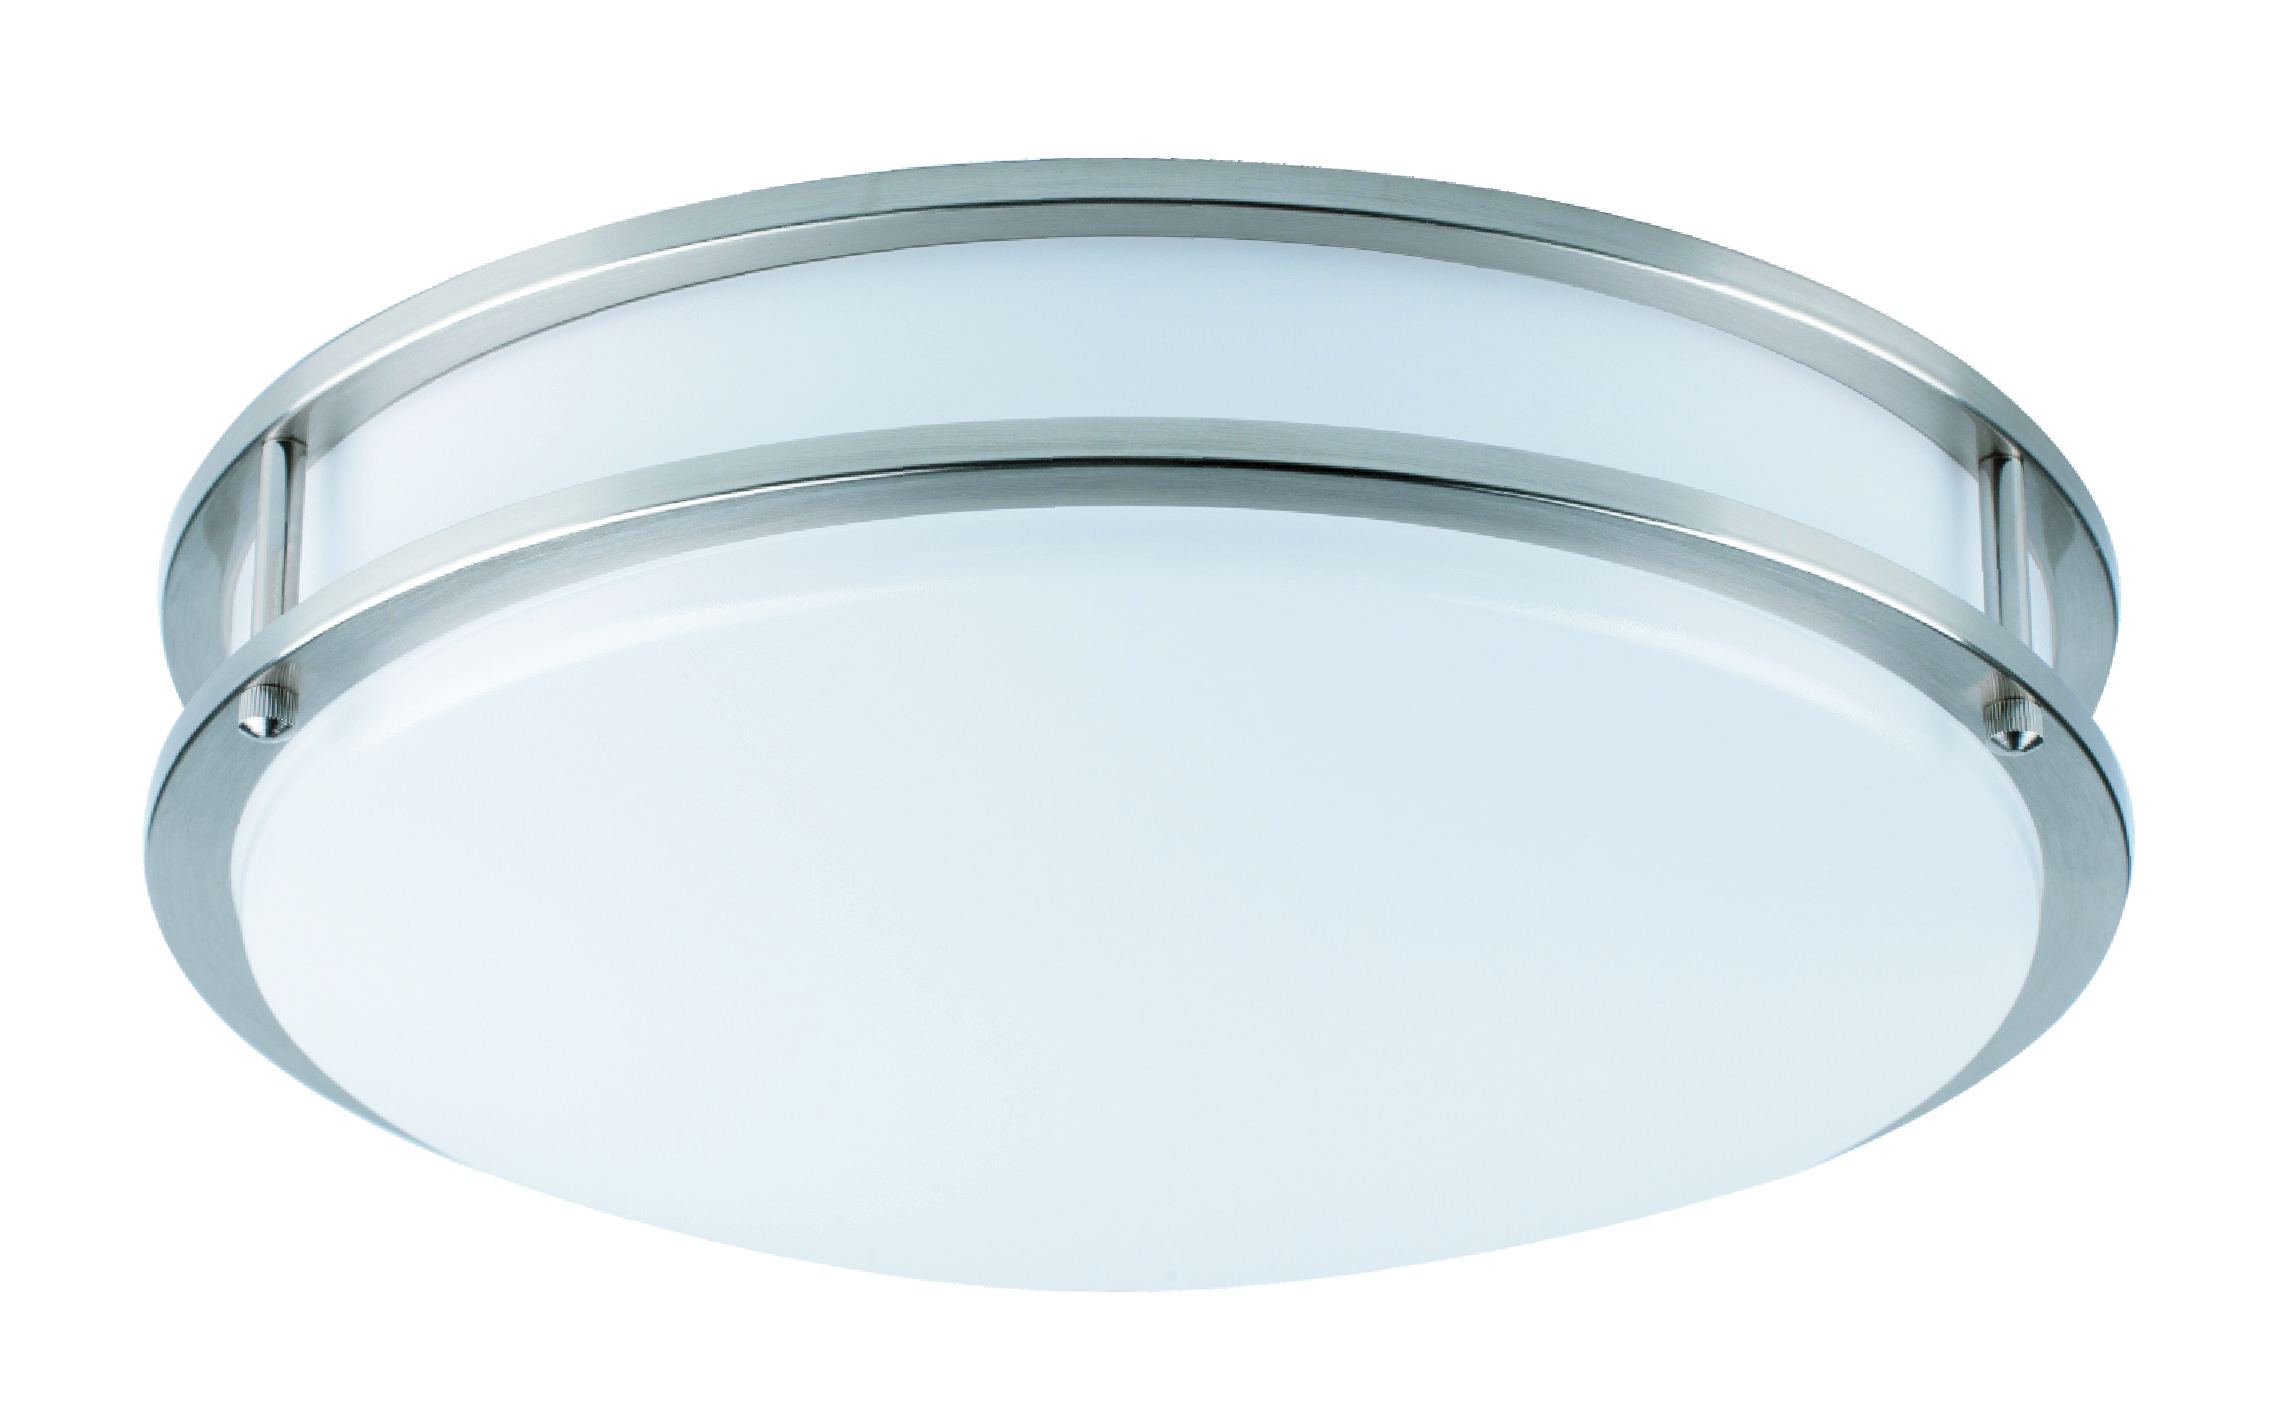 LED 16 inch two ring ceiling light